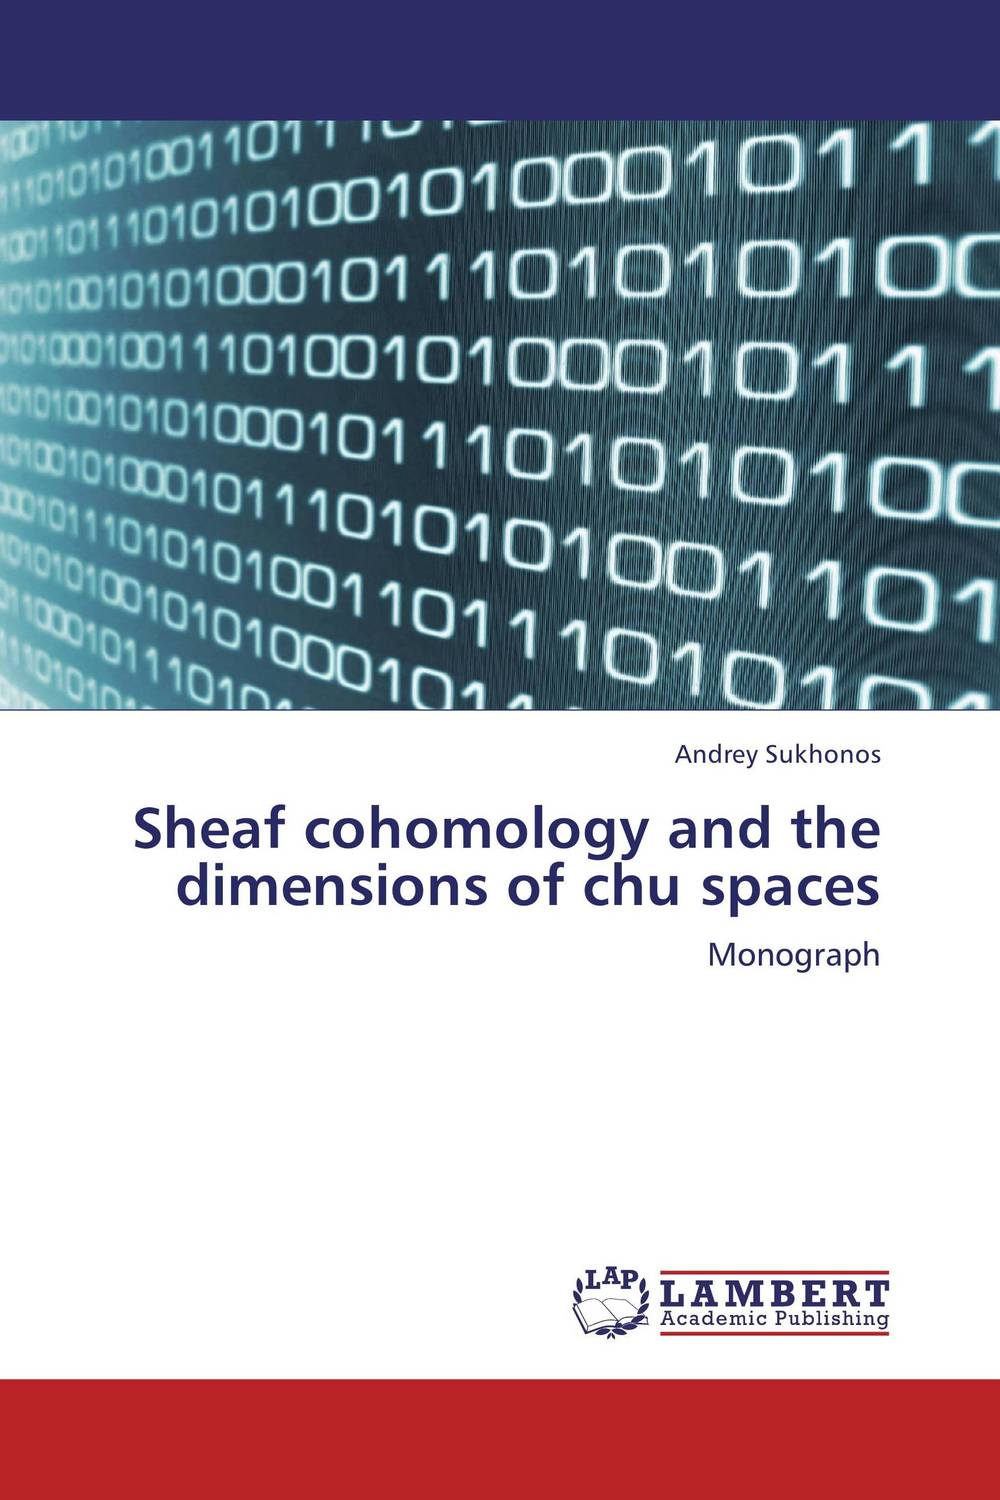 Sheaf cohomology and the dimensions of chu spaces the dual state a contribution to the theory of dictatorship